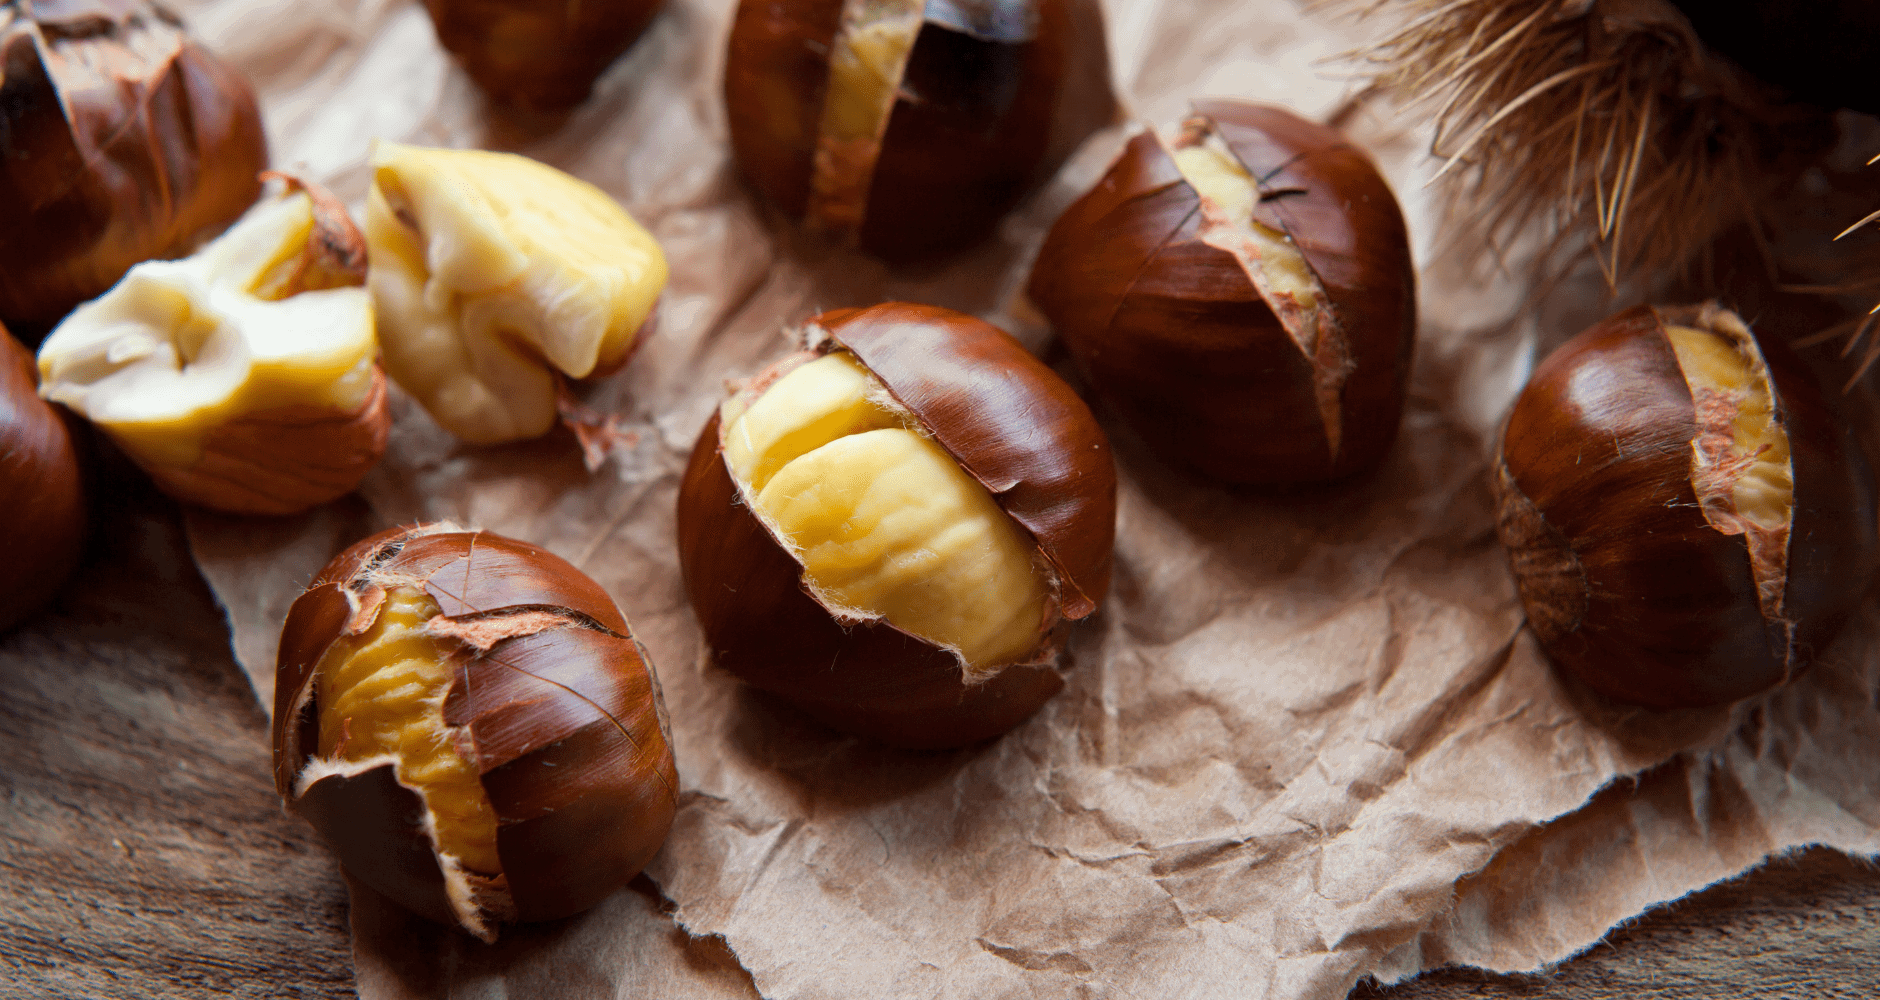 Easy Steps To Roast Chestnuts At Home (No Open Fire Needed)image preview